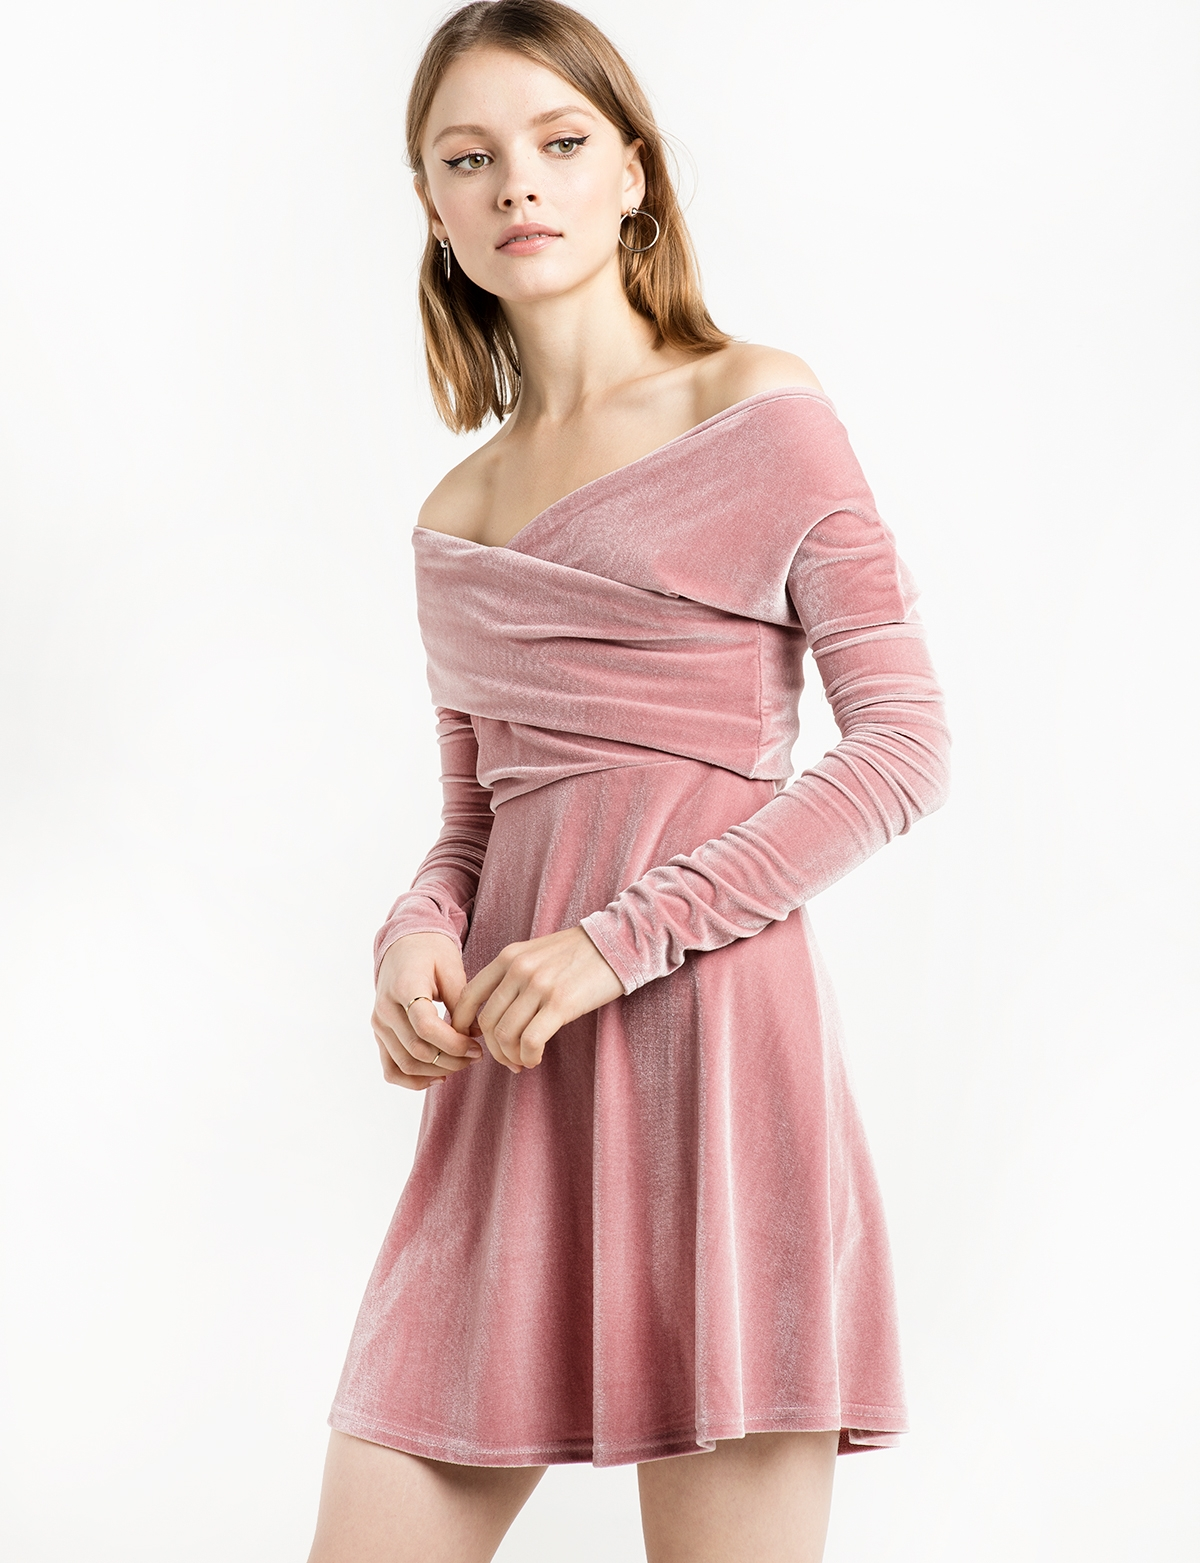 dusty-pink-velvet-off-the-shoulder-dress-26470-1